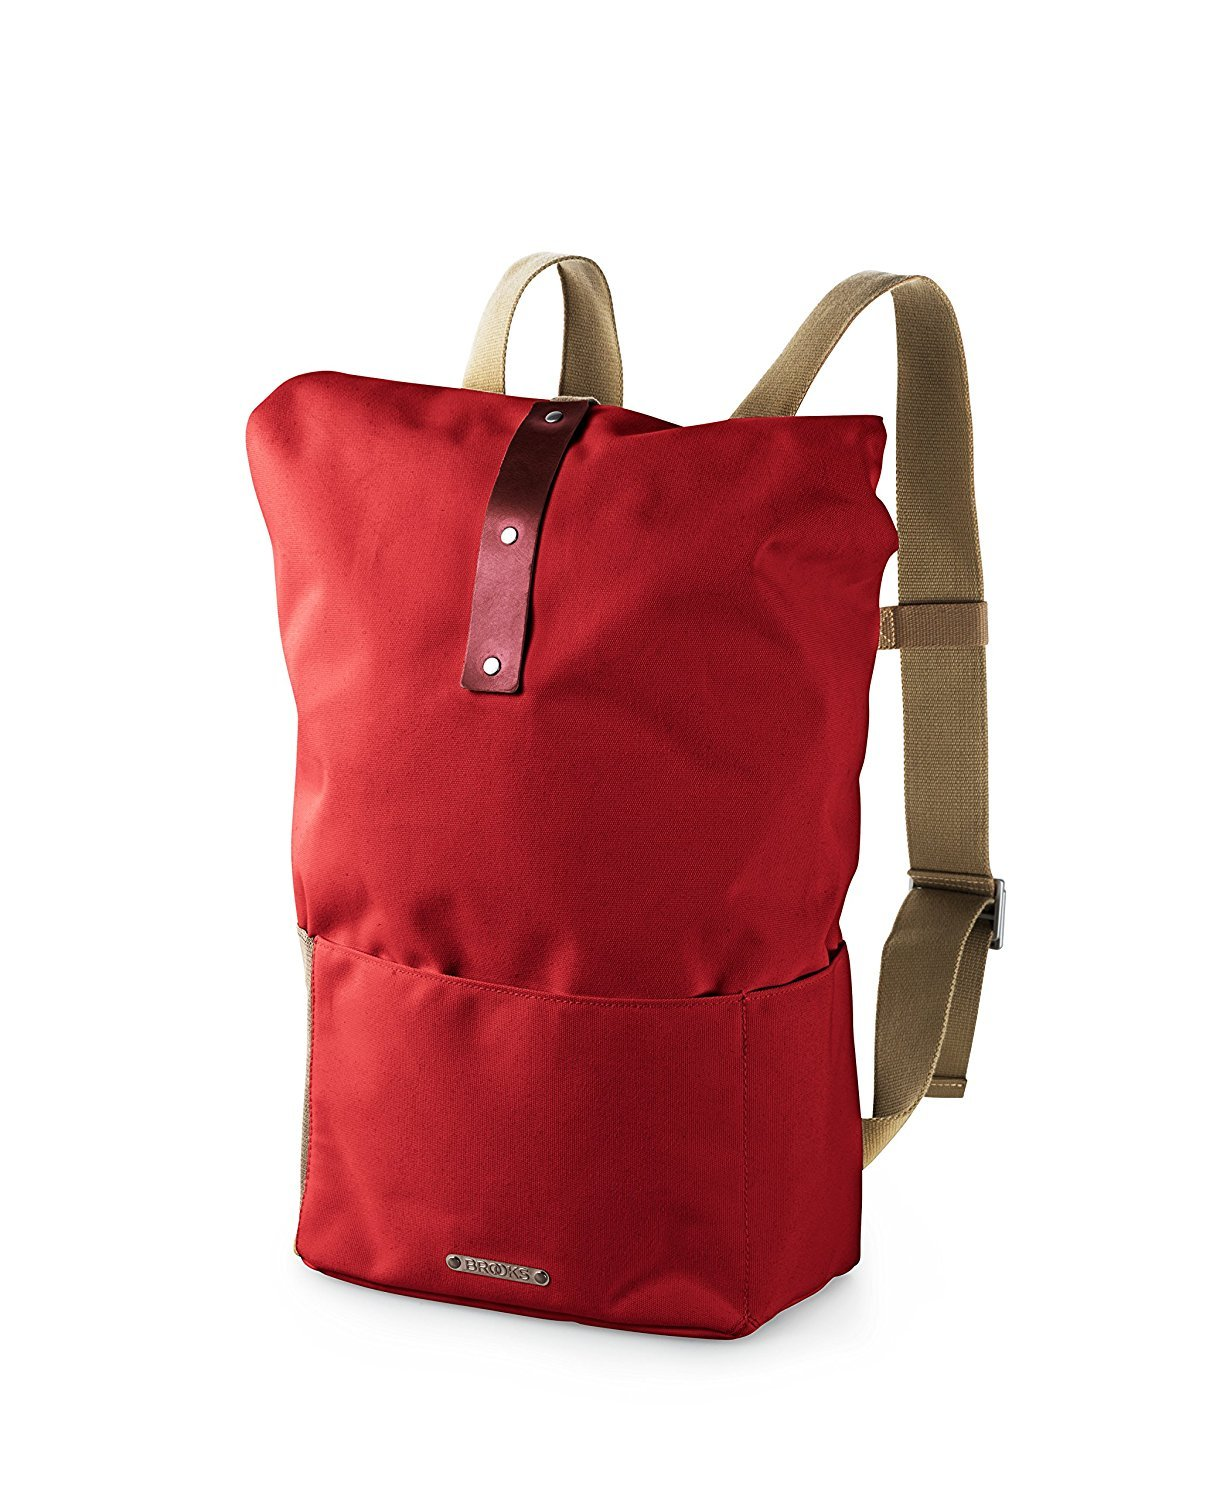 Brooks England Hackney Backpack Red/Maroon [並行輸入品] B077QG5KRH